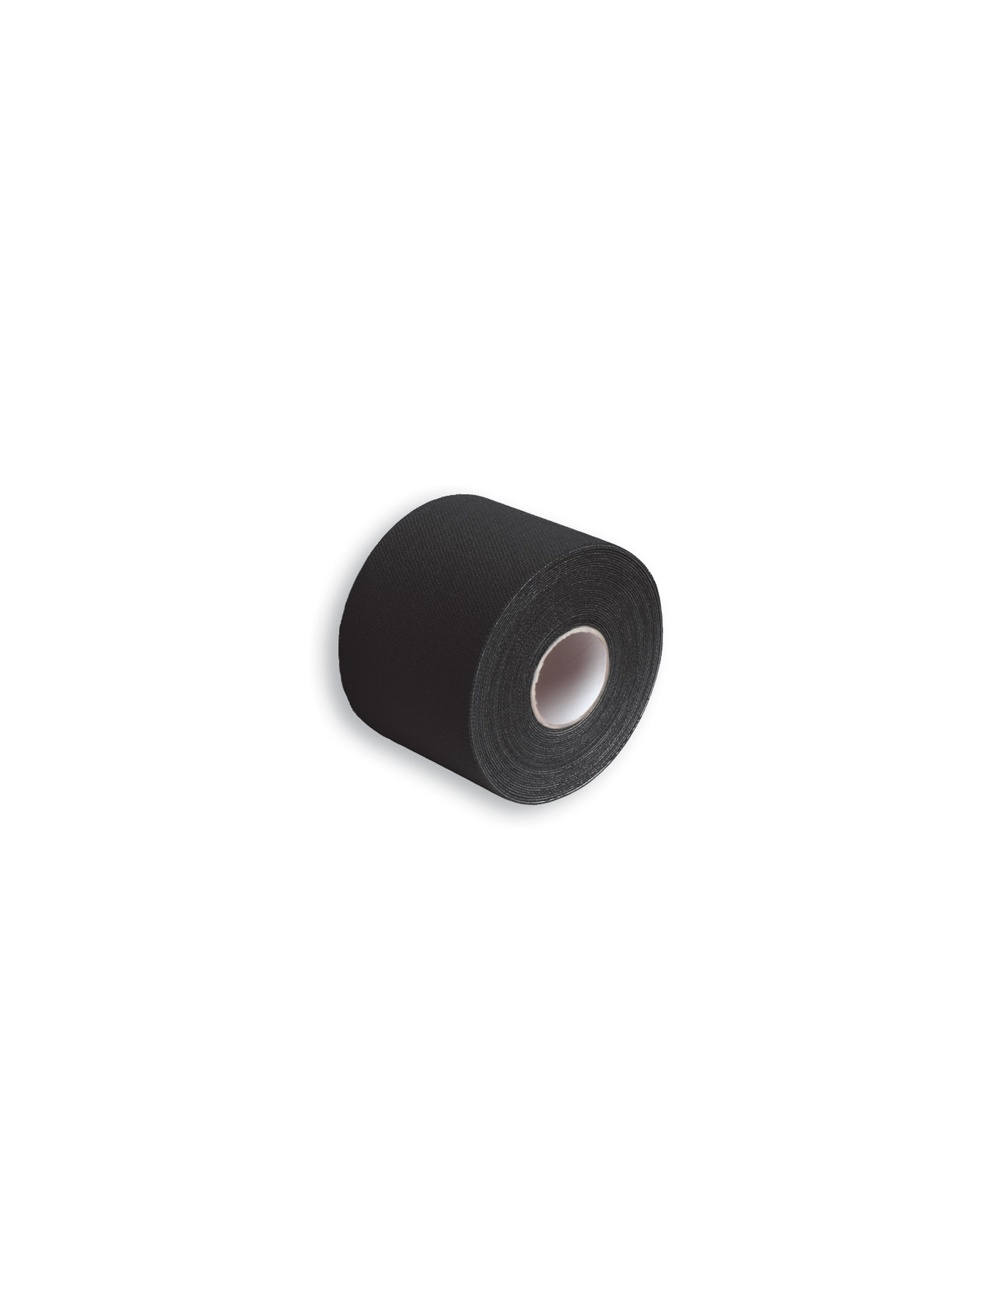 "SpiderTech Tape Single Roll 2"" x 16' Black"